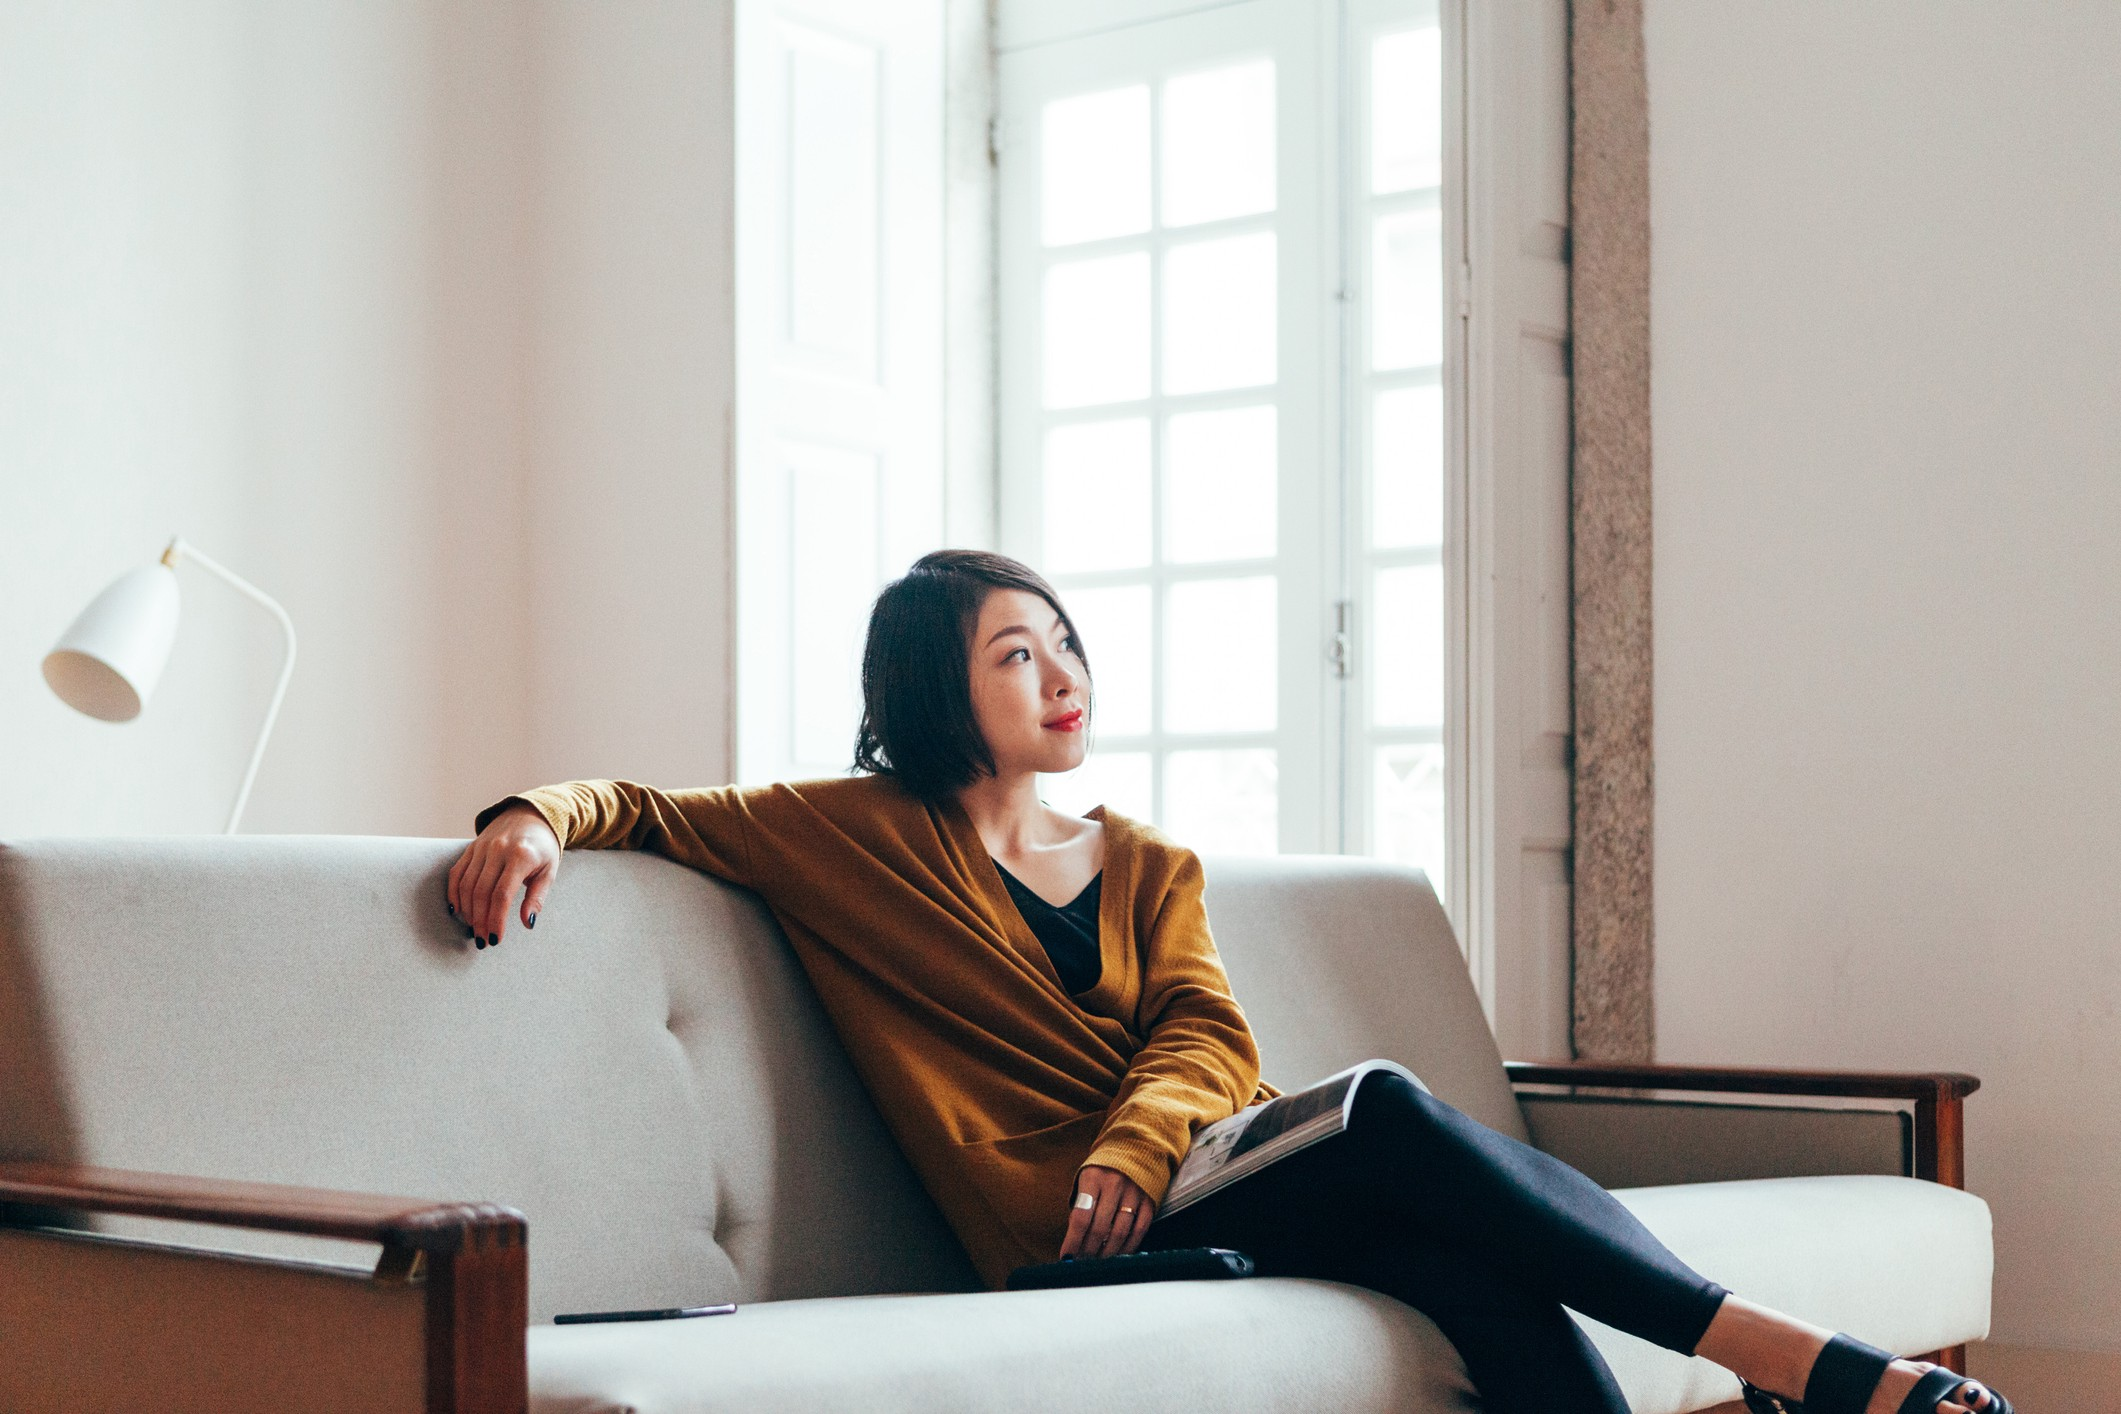 Asian woman sitting on her sofa looking out the frame.